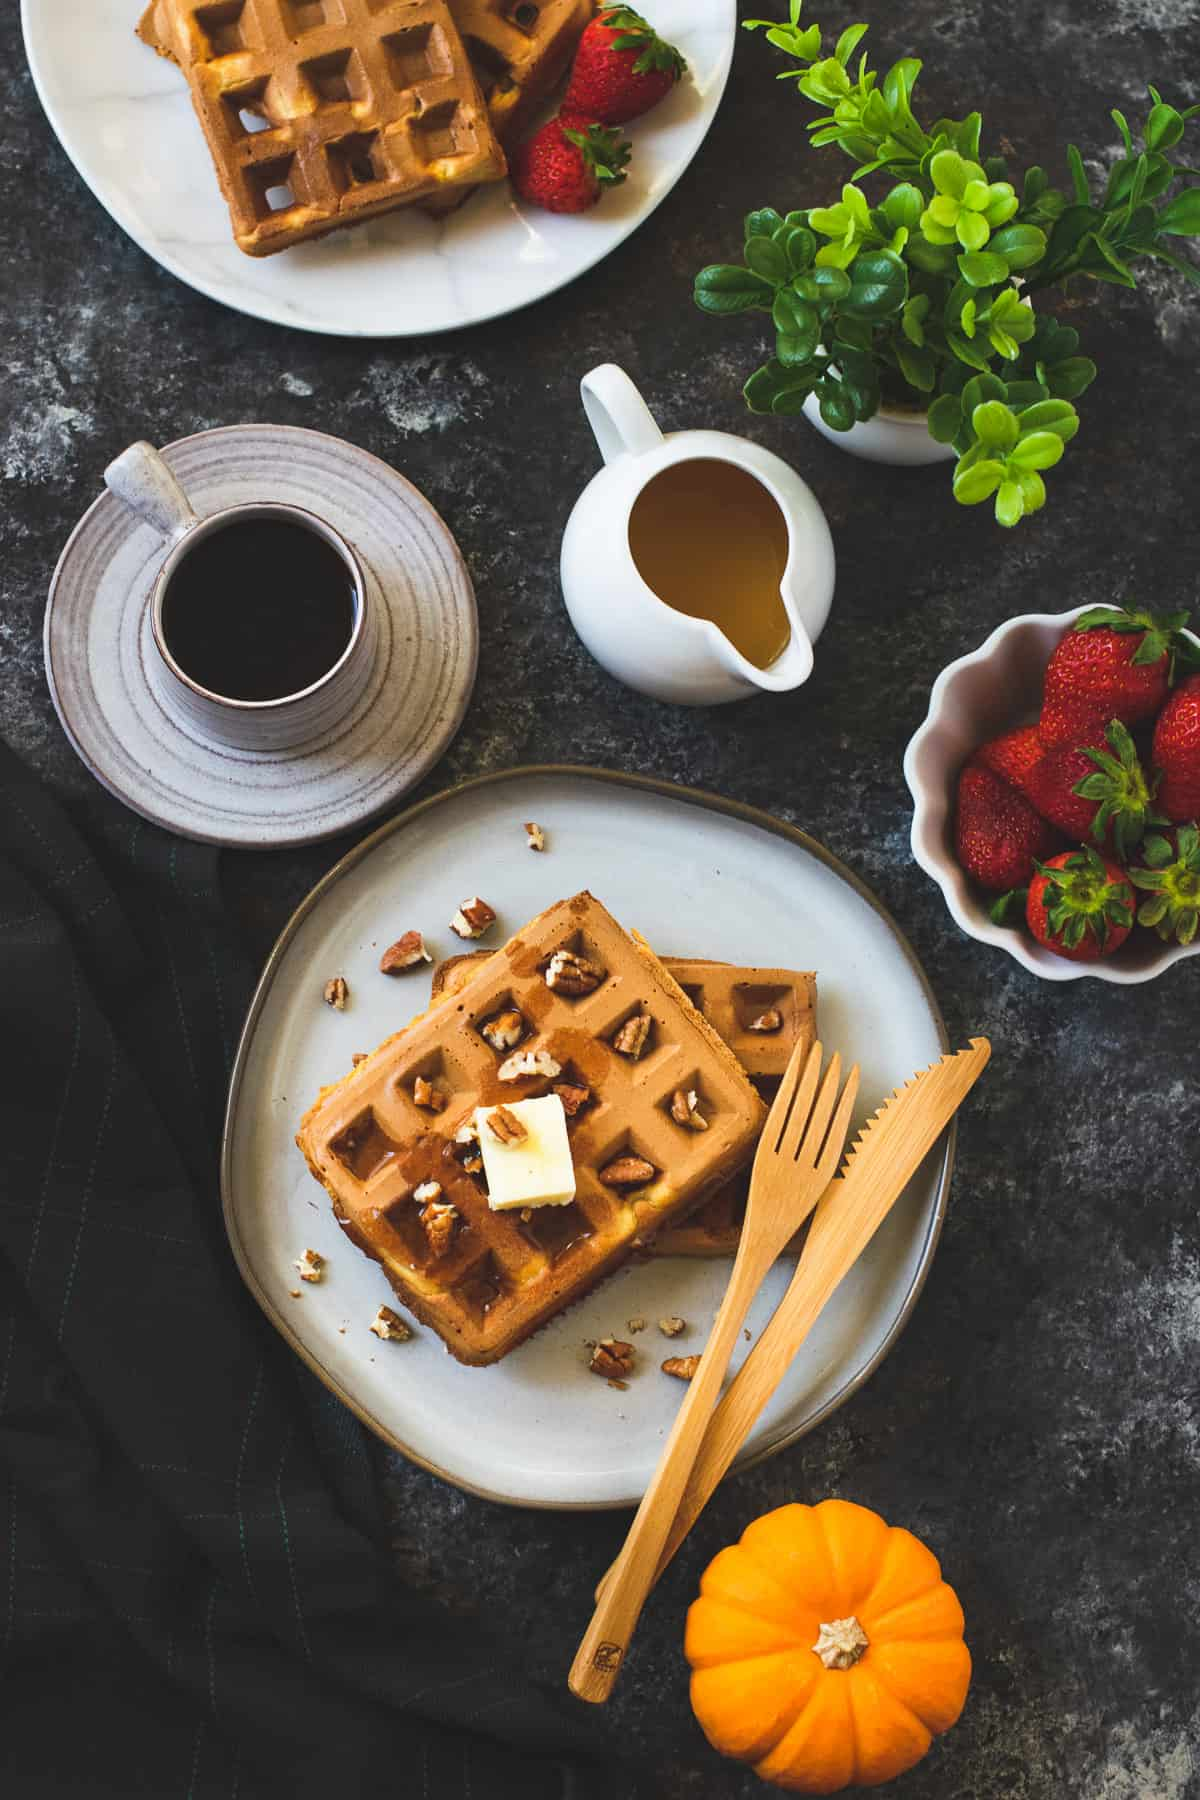 Crispy waffles served with coffee and strawberries on the side